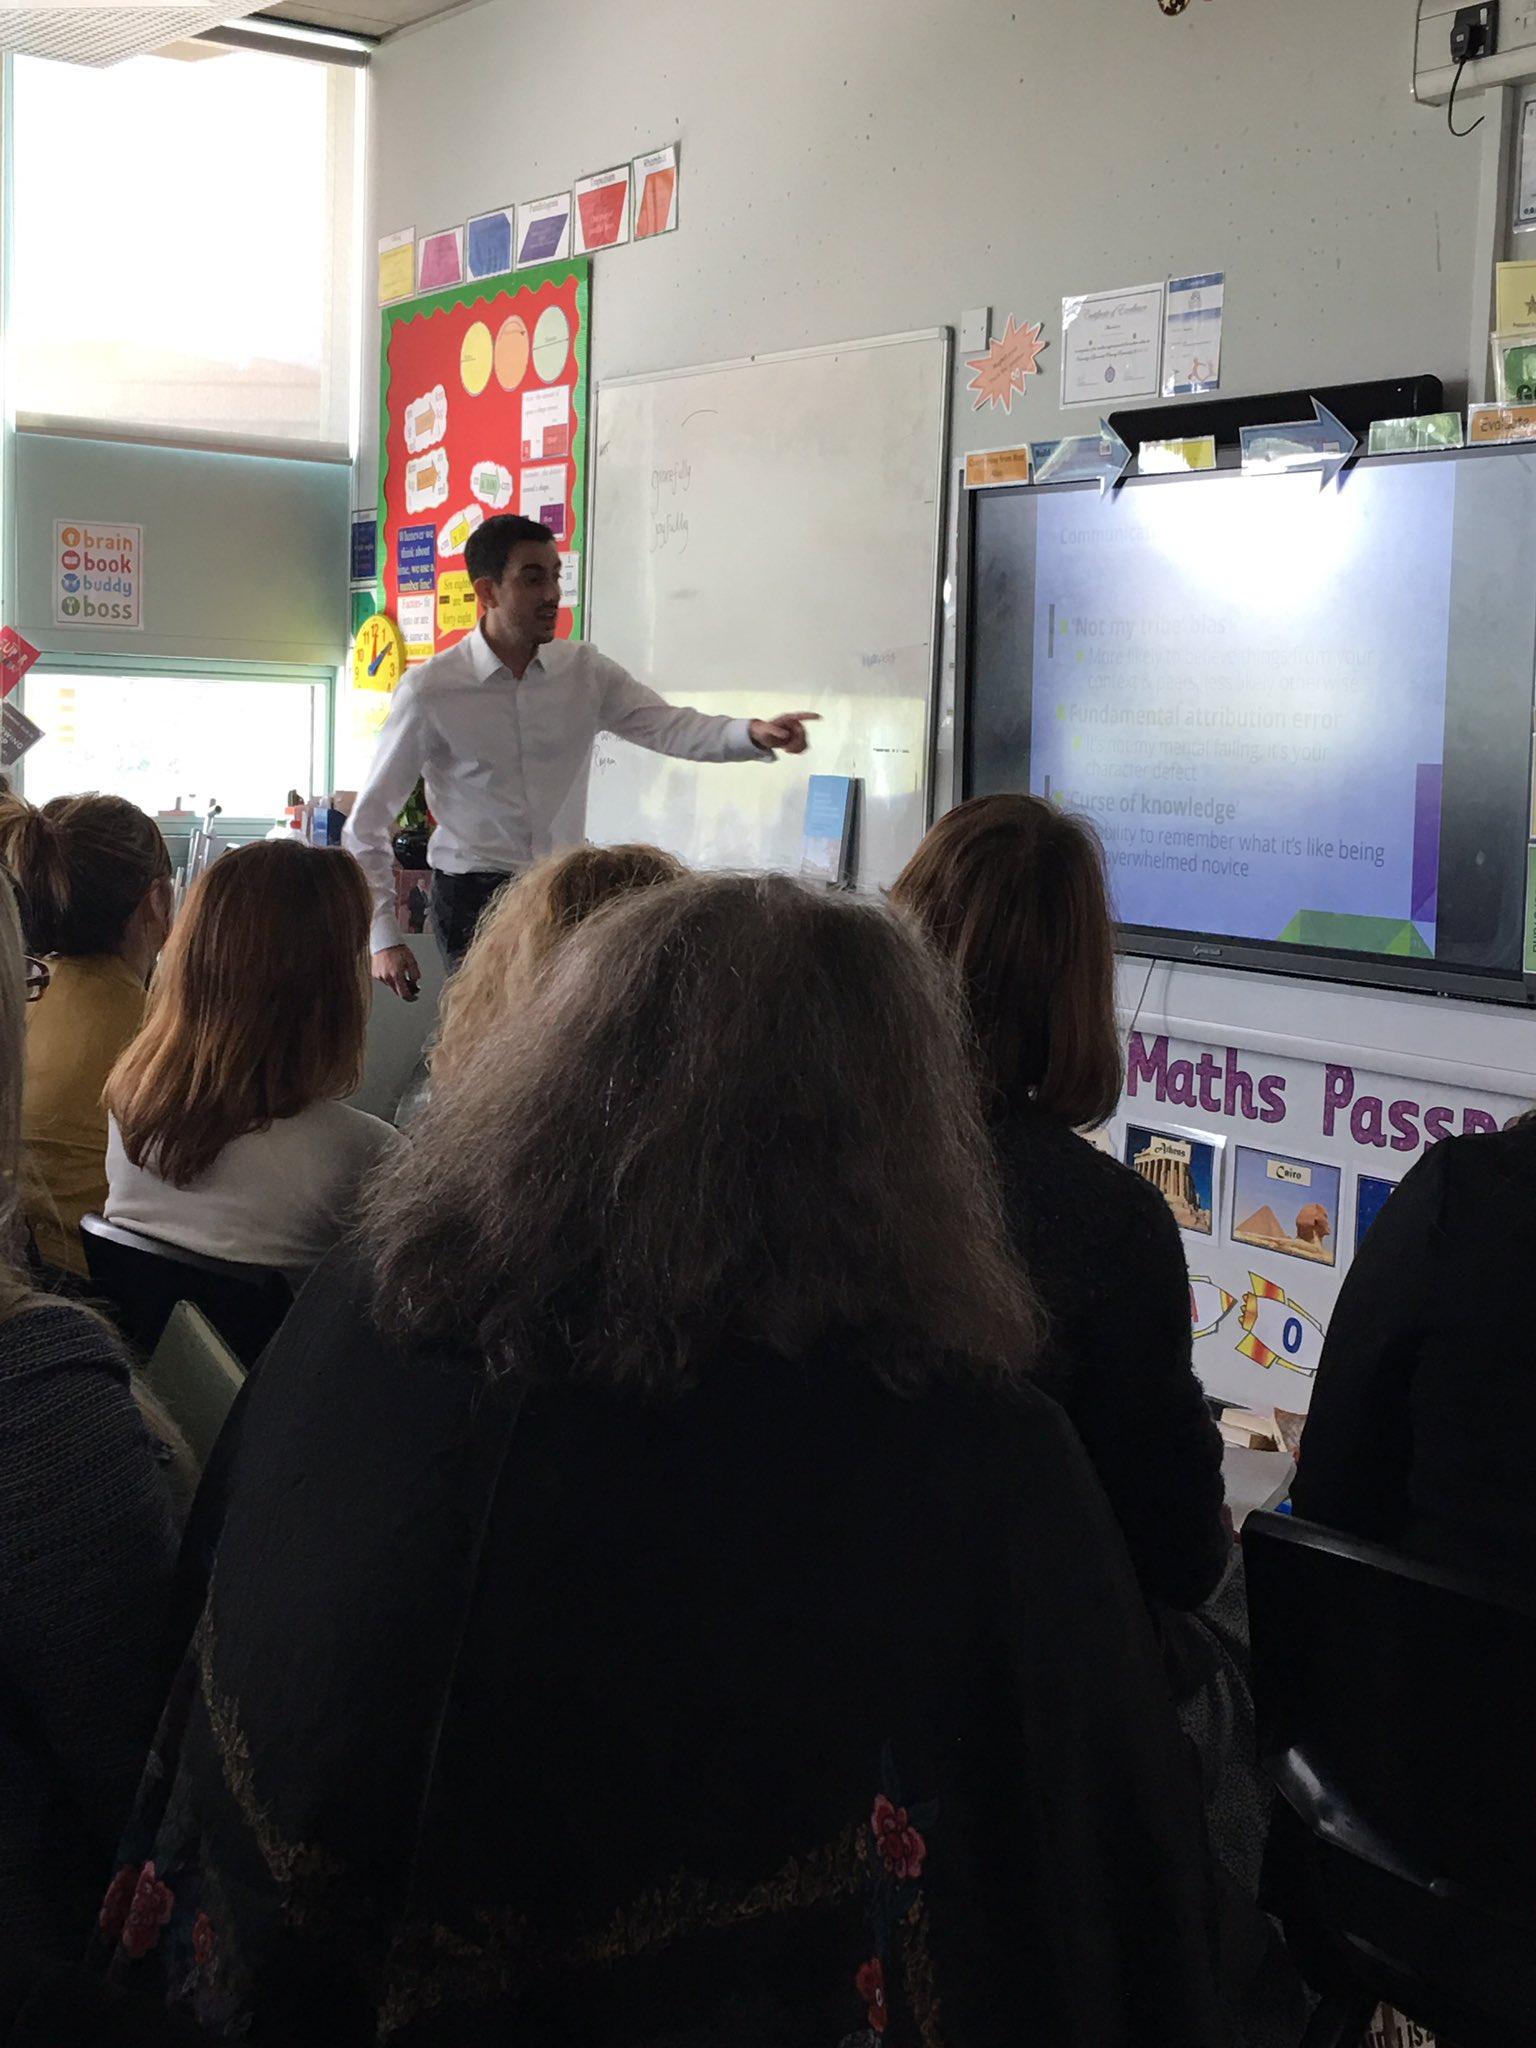 @informed_edu David Weston is literally on fire! 🔥💥🔥#rED17 So much food for thought. https://t.co/bsd6wJs588